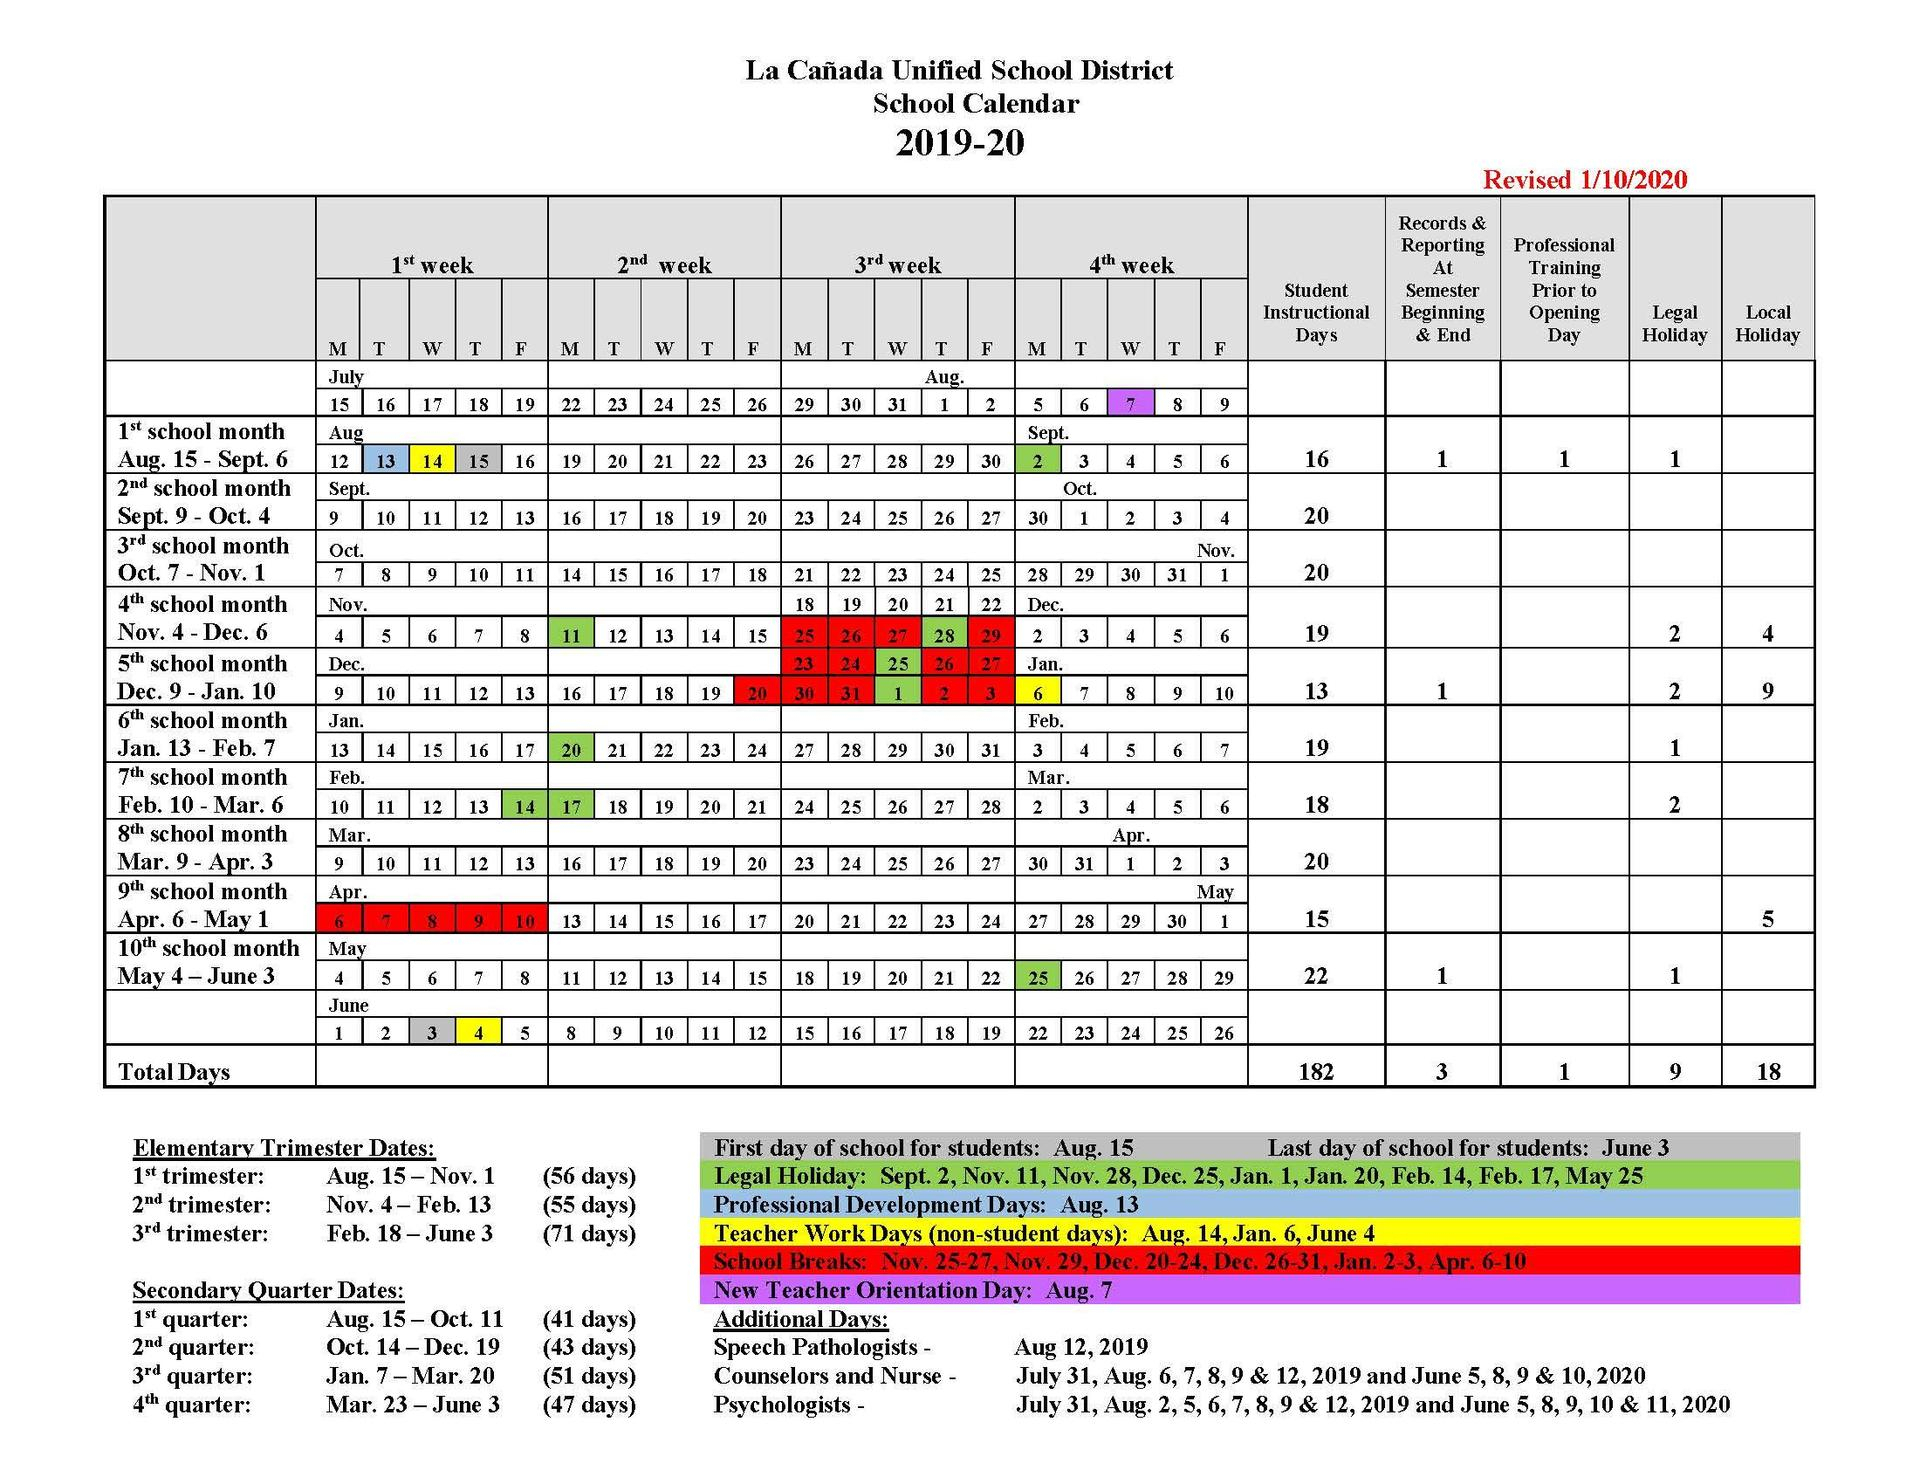 Instructional Days Calendars – Yearly Calendars – La